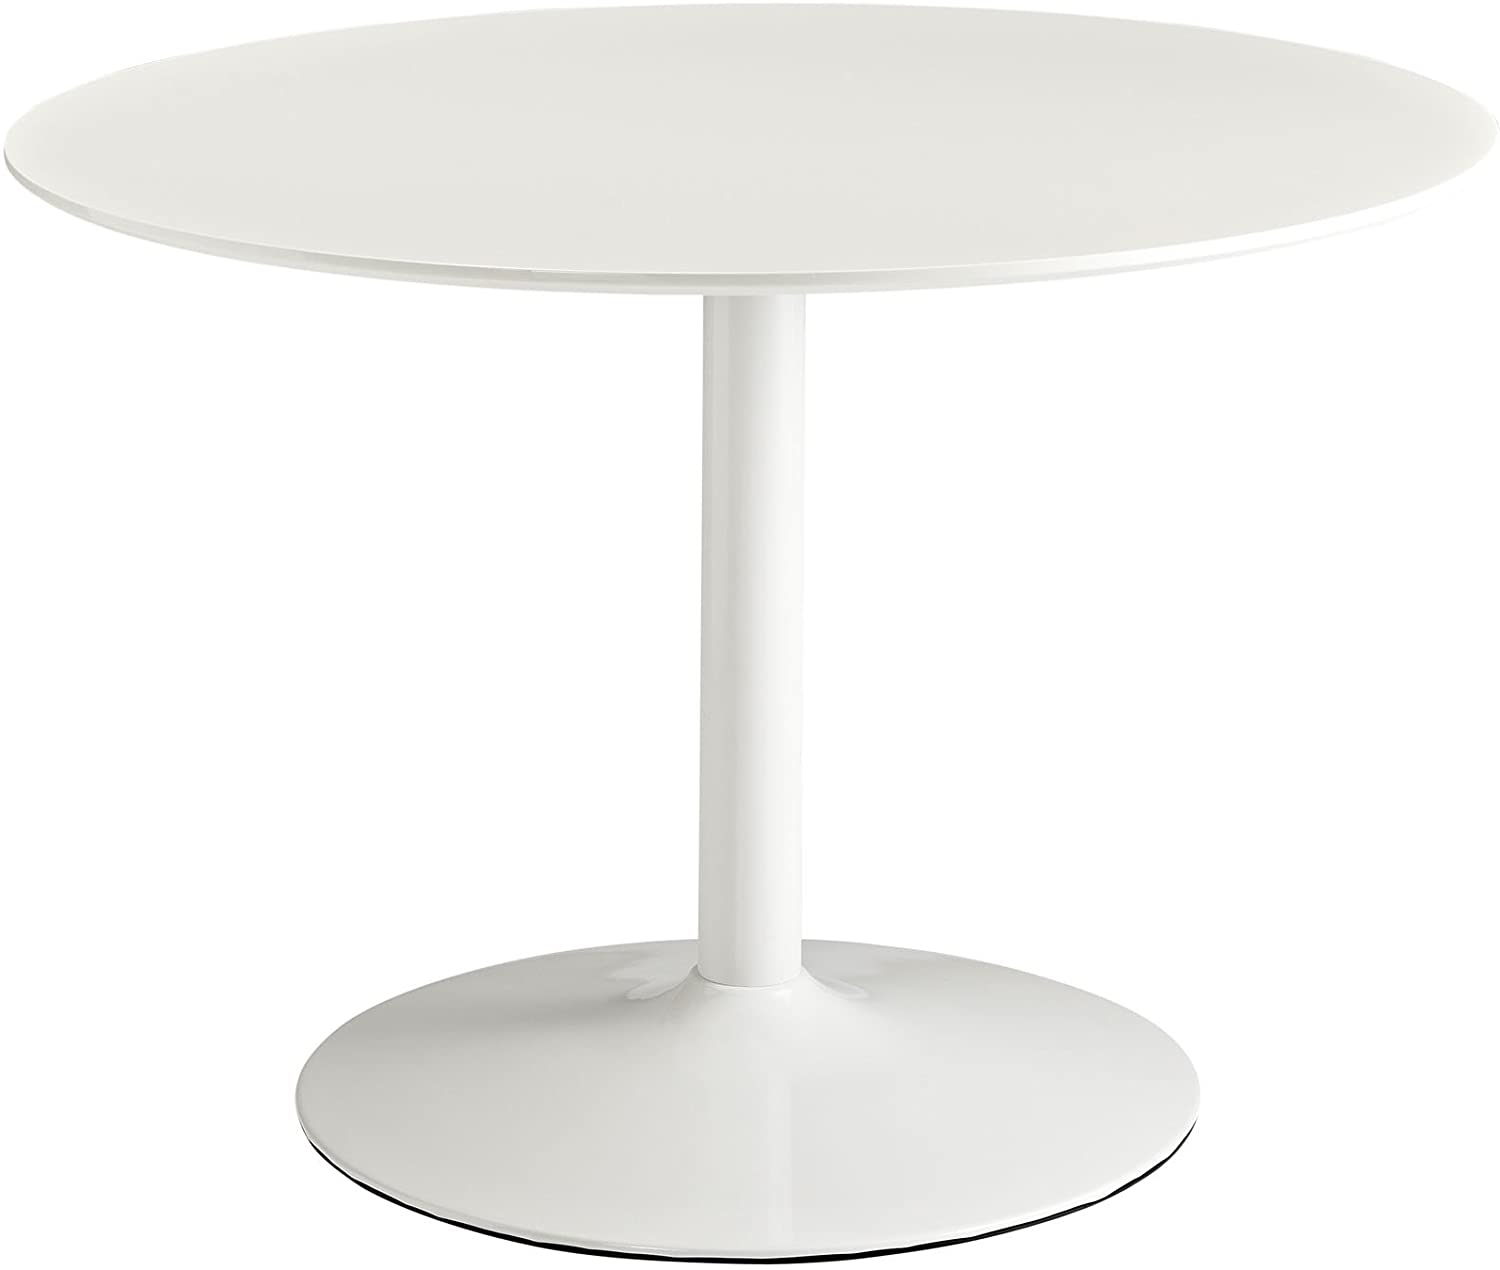 Minimal Round White Pedestal Dining Table